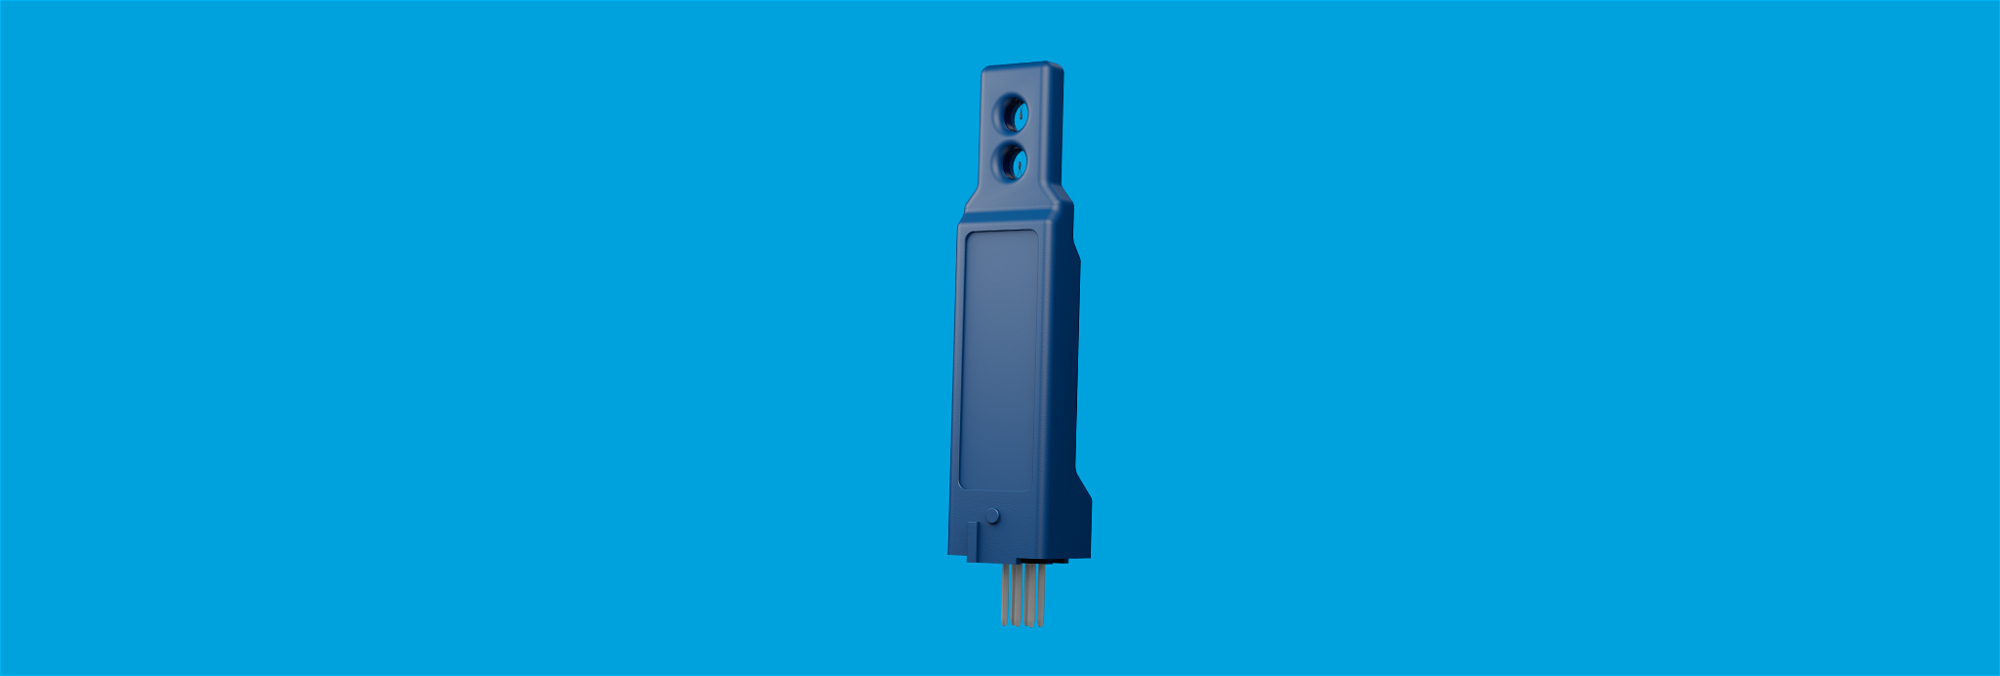 Vertical airflow sensor for mounting on PCB or PCBA to measure air velocity and air temperature.